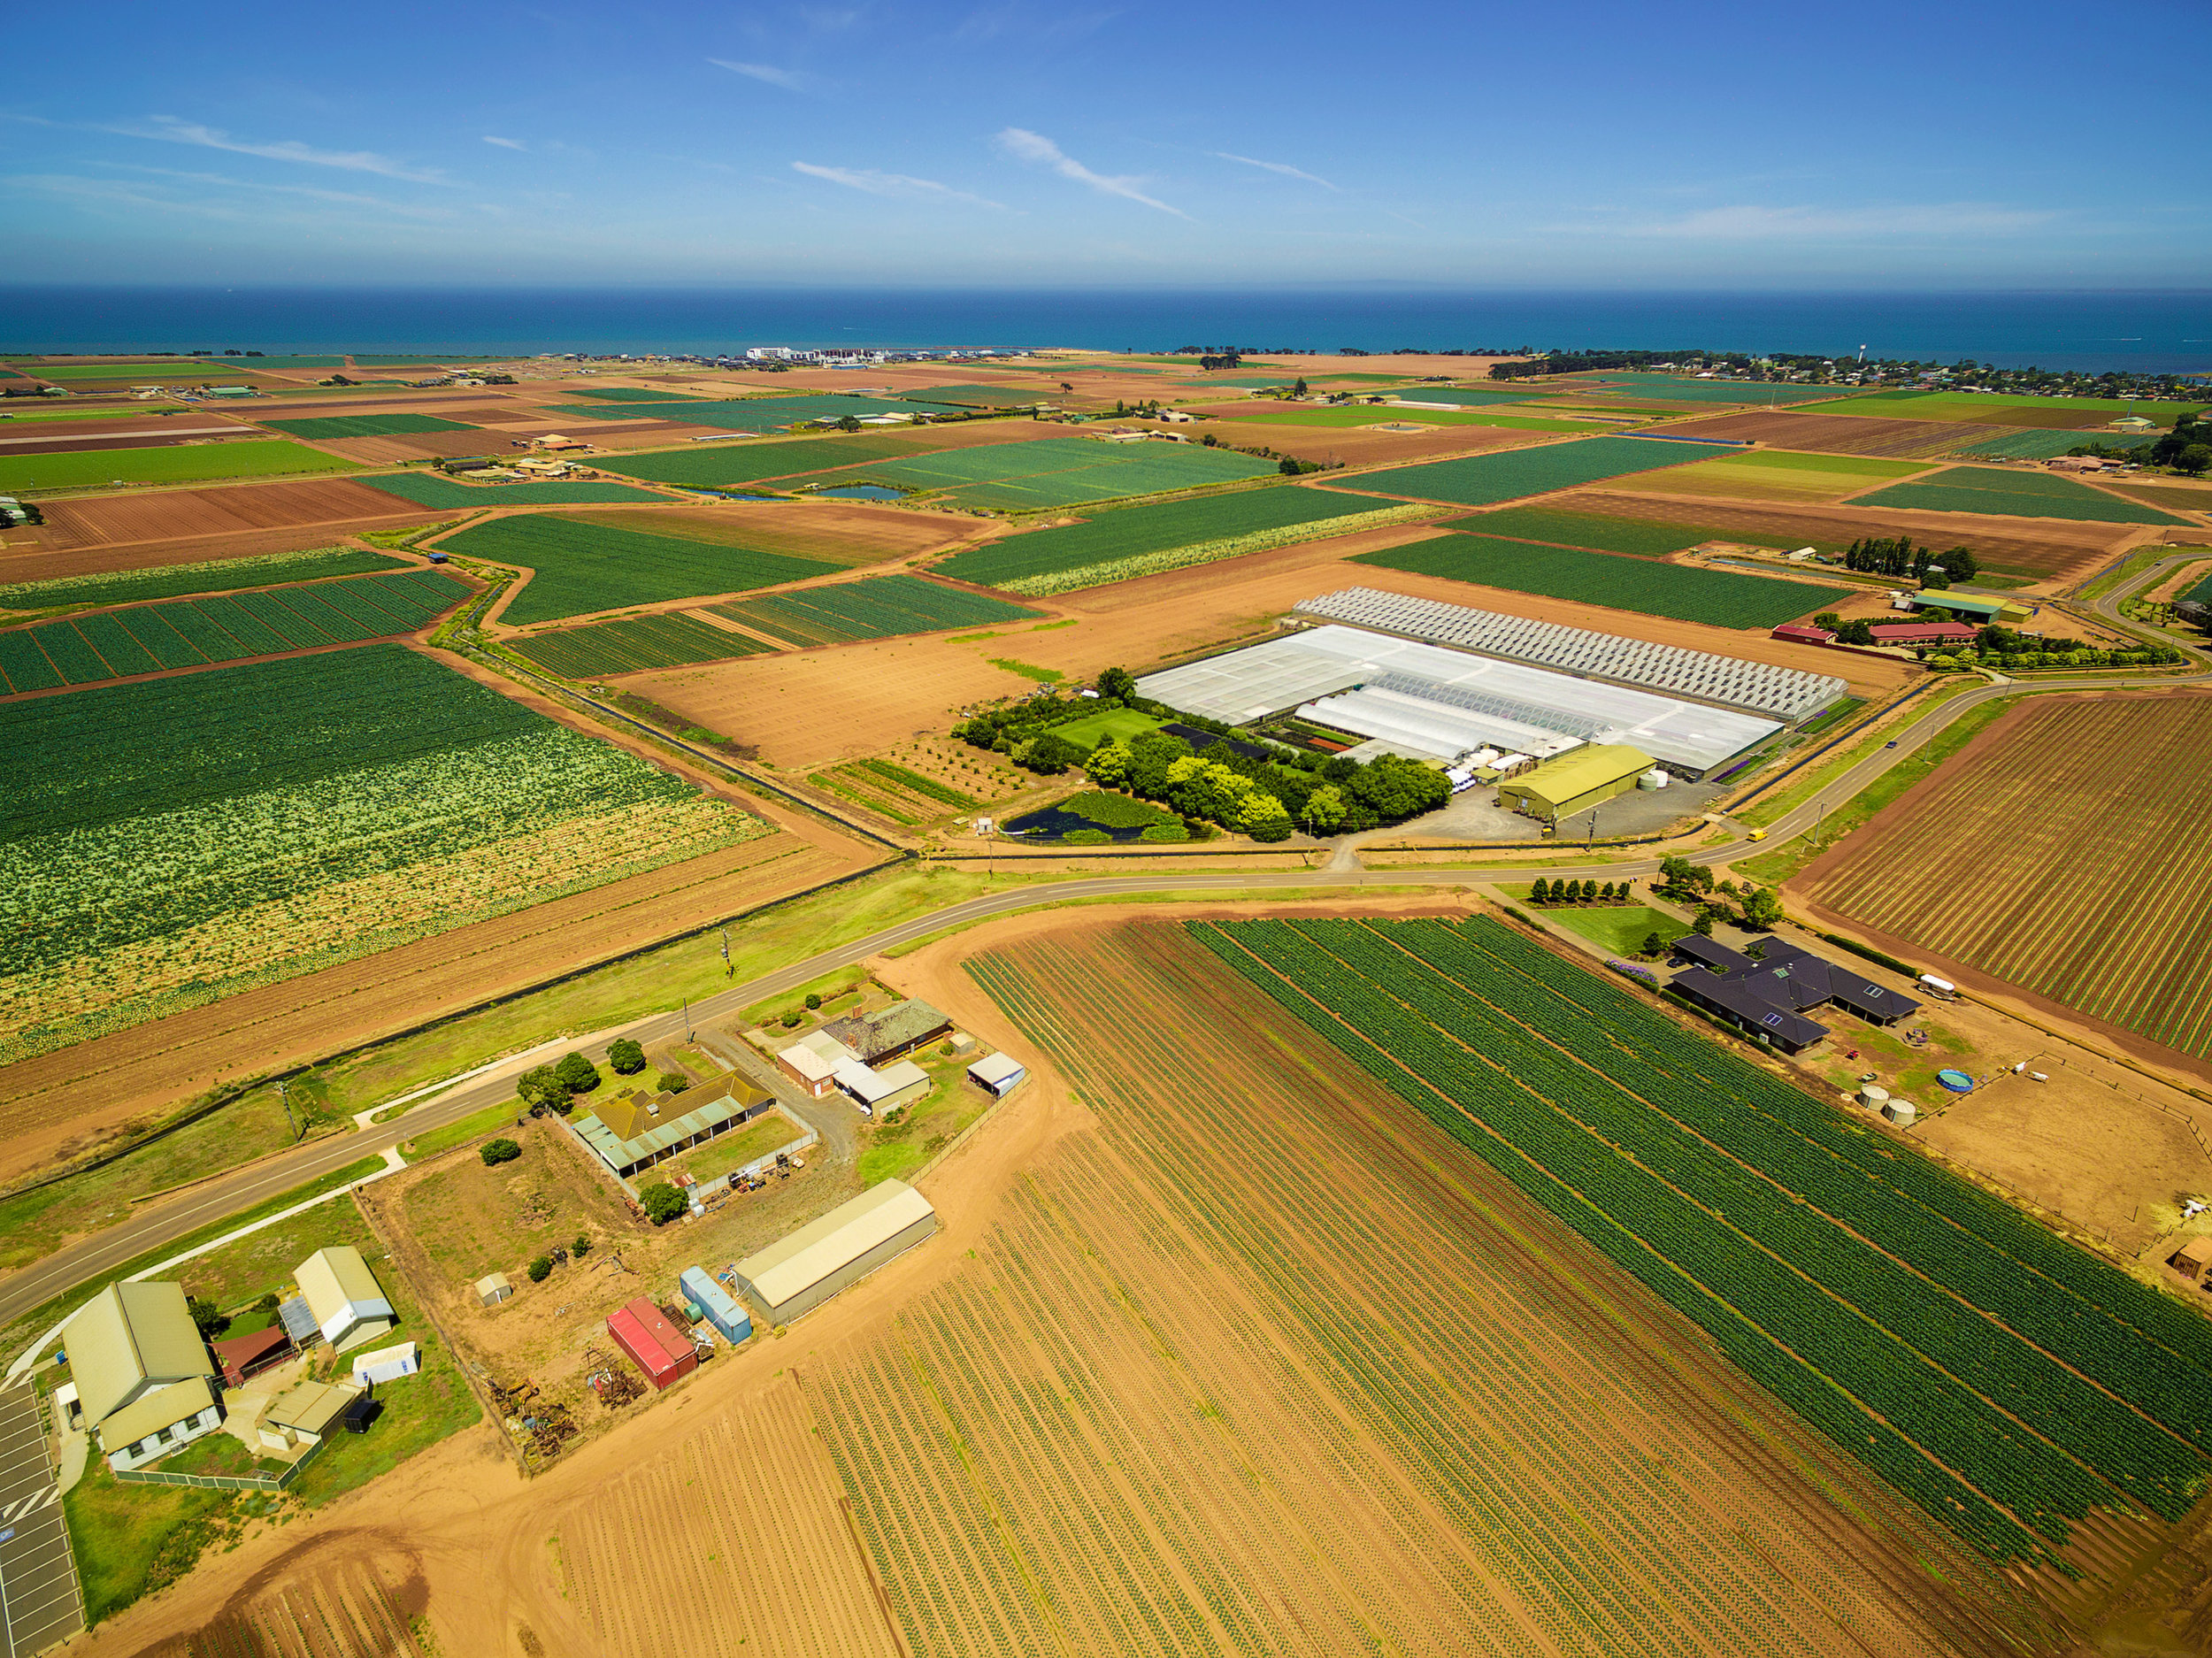 bigstock-Aerial-View-Of-Agricultural-Fi-226688218.jpg